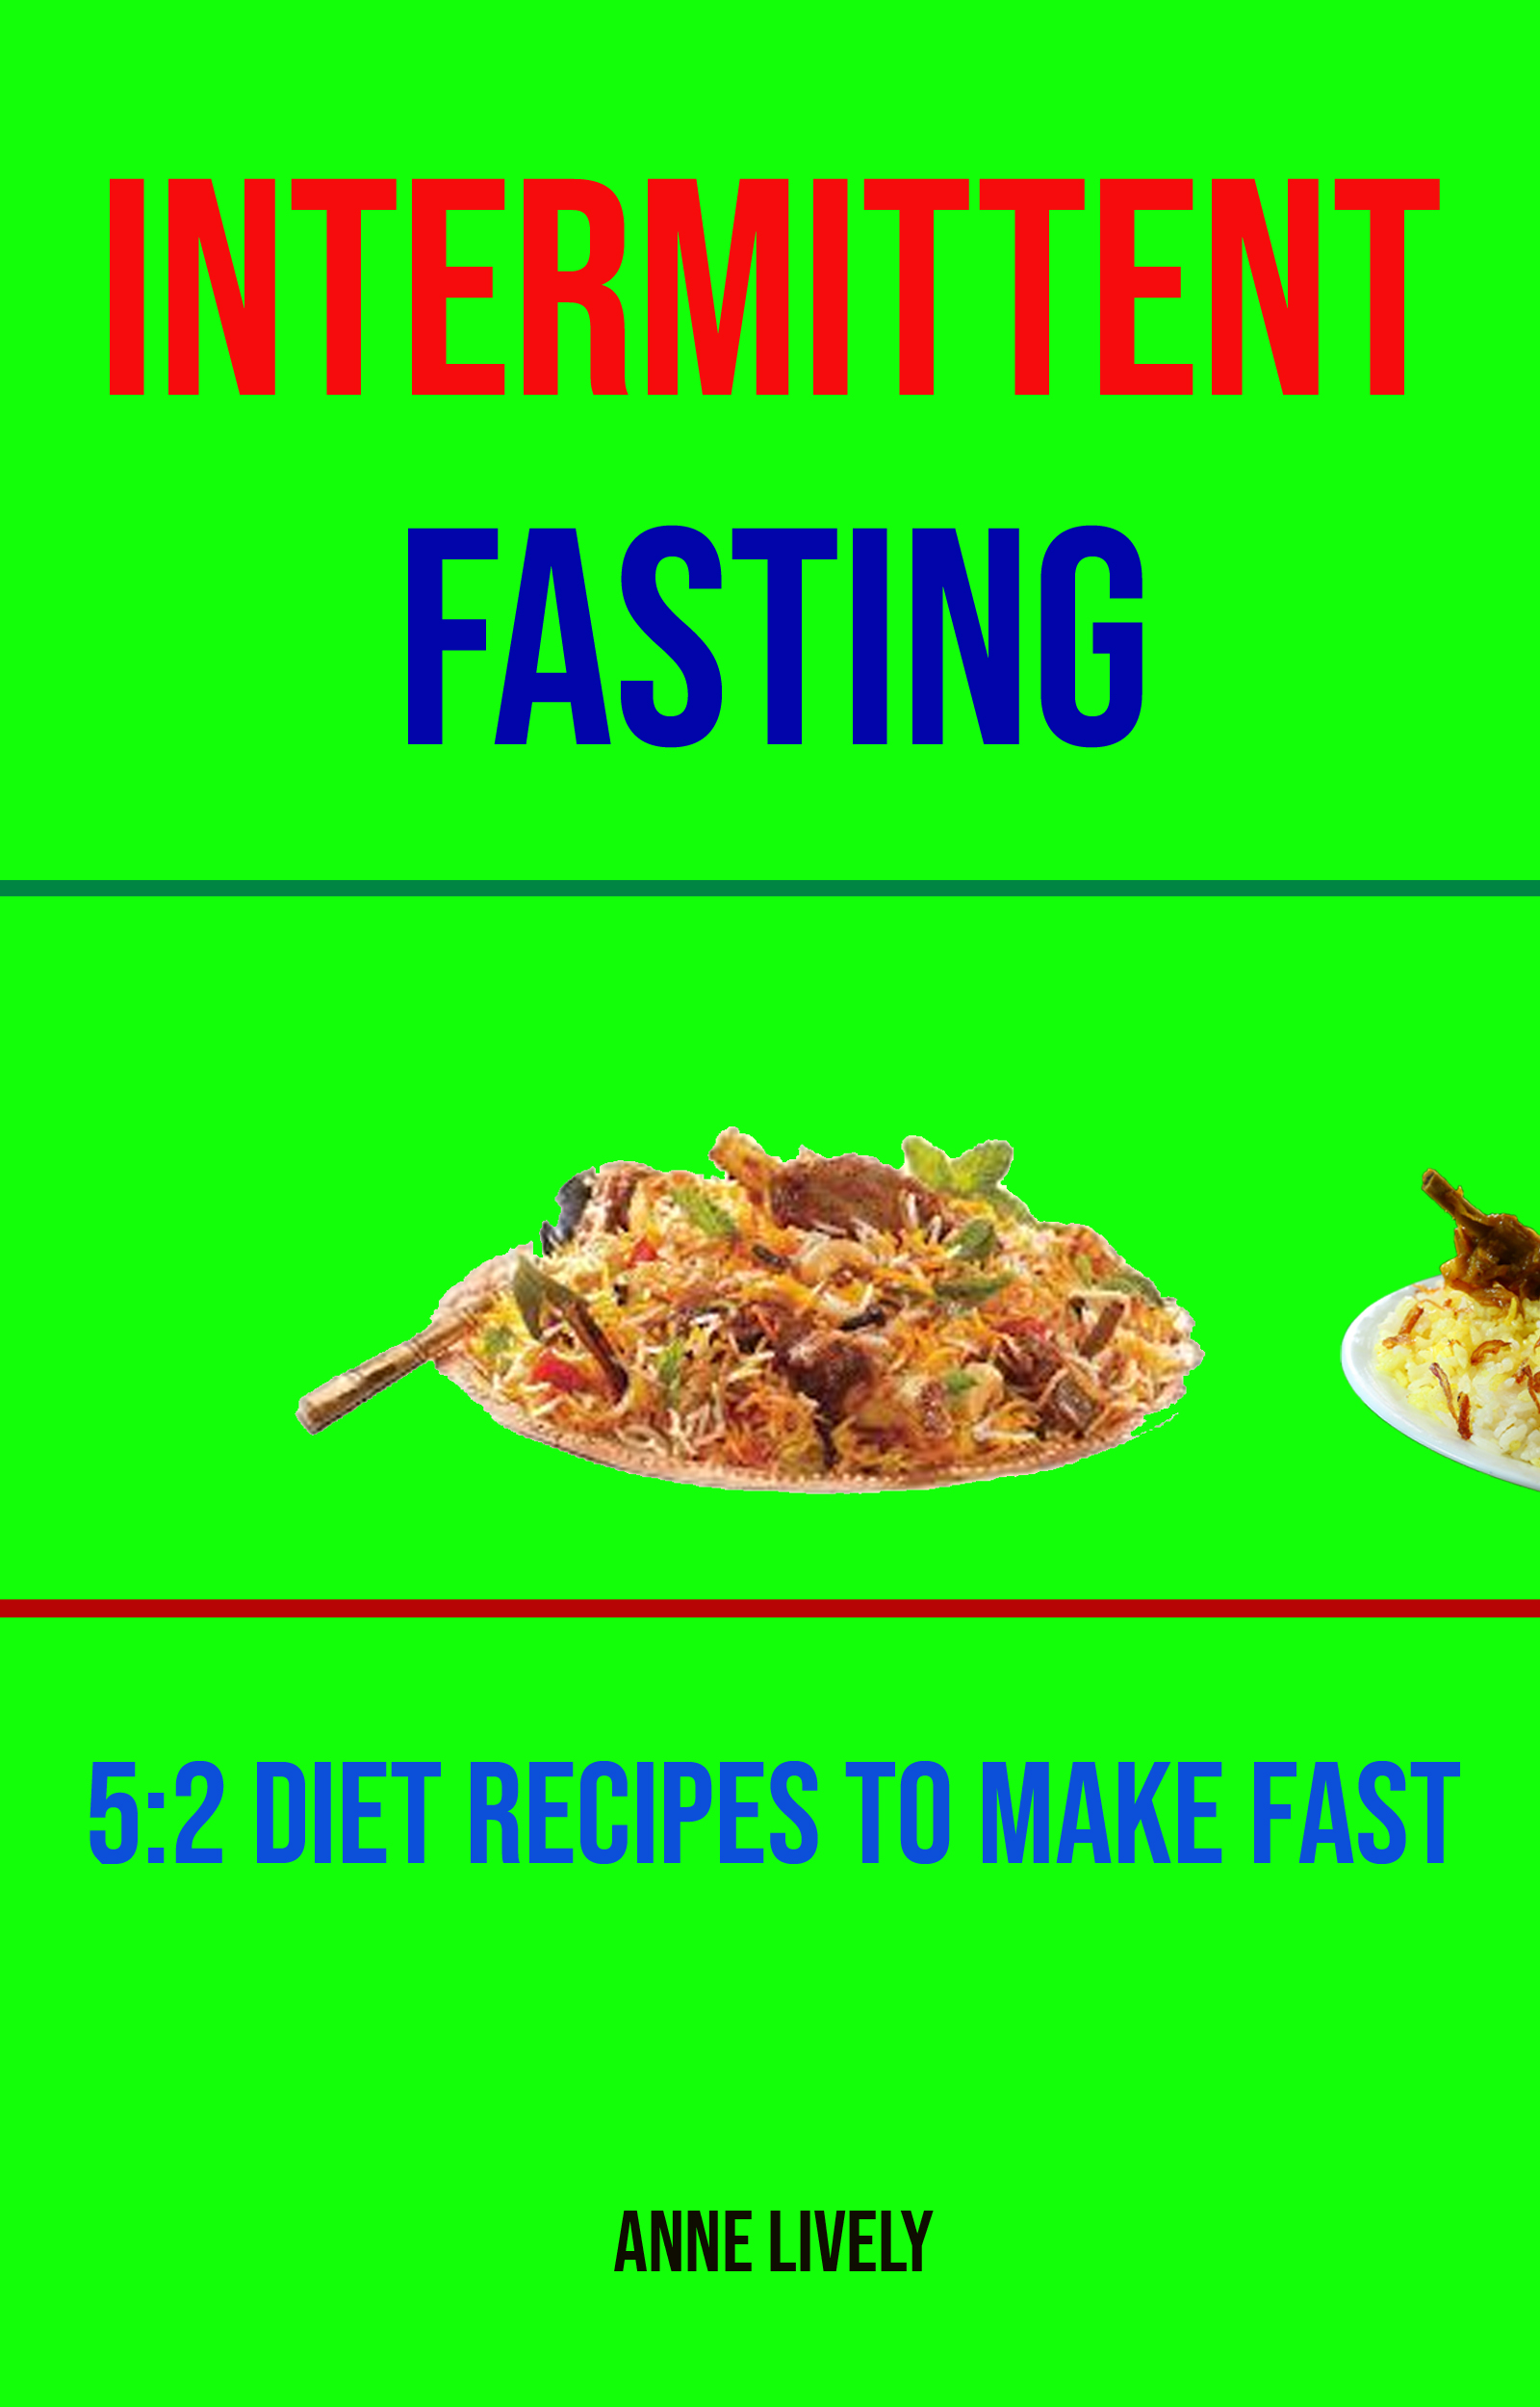 Intermittent fasting: 5:2 diet recipes to make fast